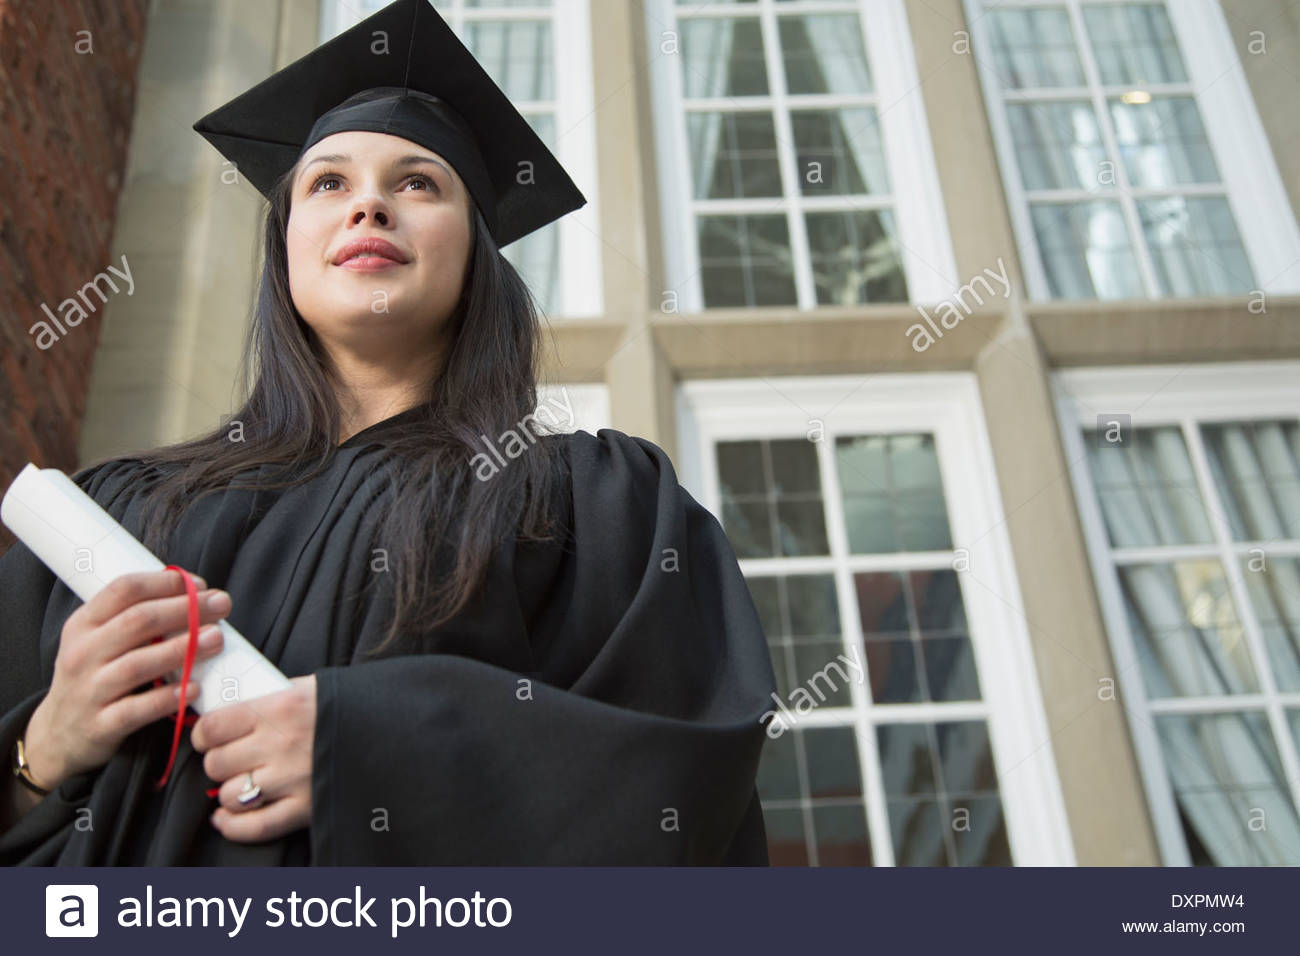 Pensive college graduate holding diploma Photo Stock